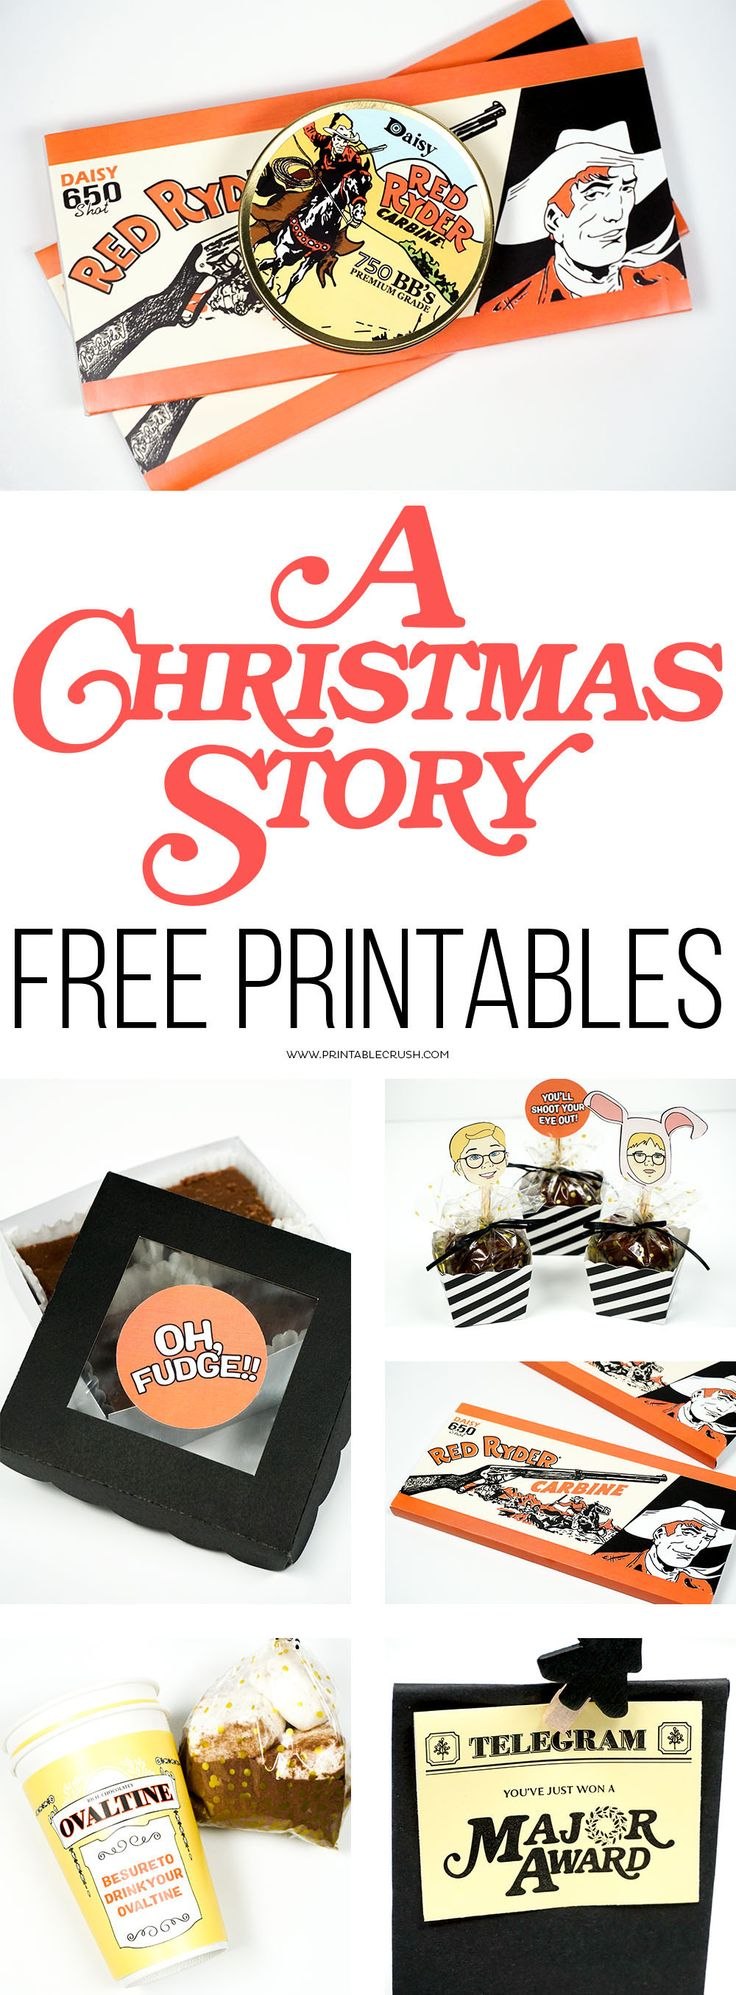 Download A Christmas Story FREE Printables to use at parties or for creative Christmas gifts. Includes 8 designs, with PDF and PNG versions for #Cricut use! #AChristmasStory #ChristmasPrintables